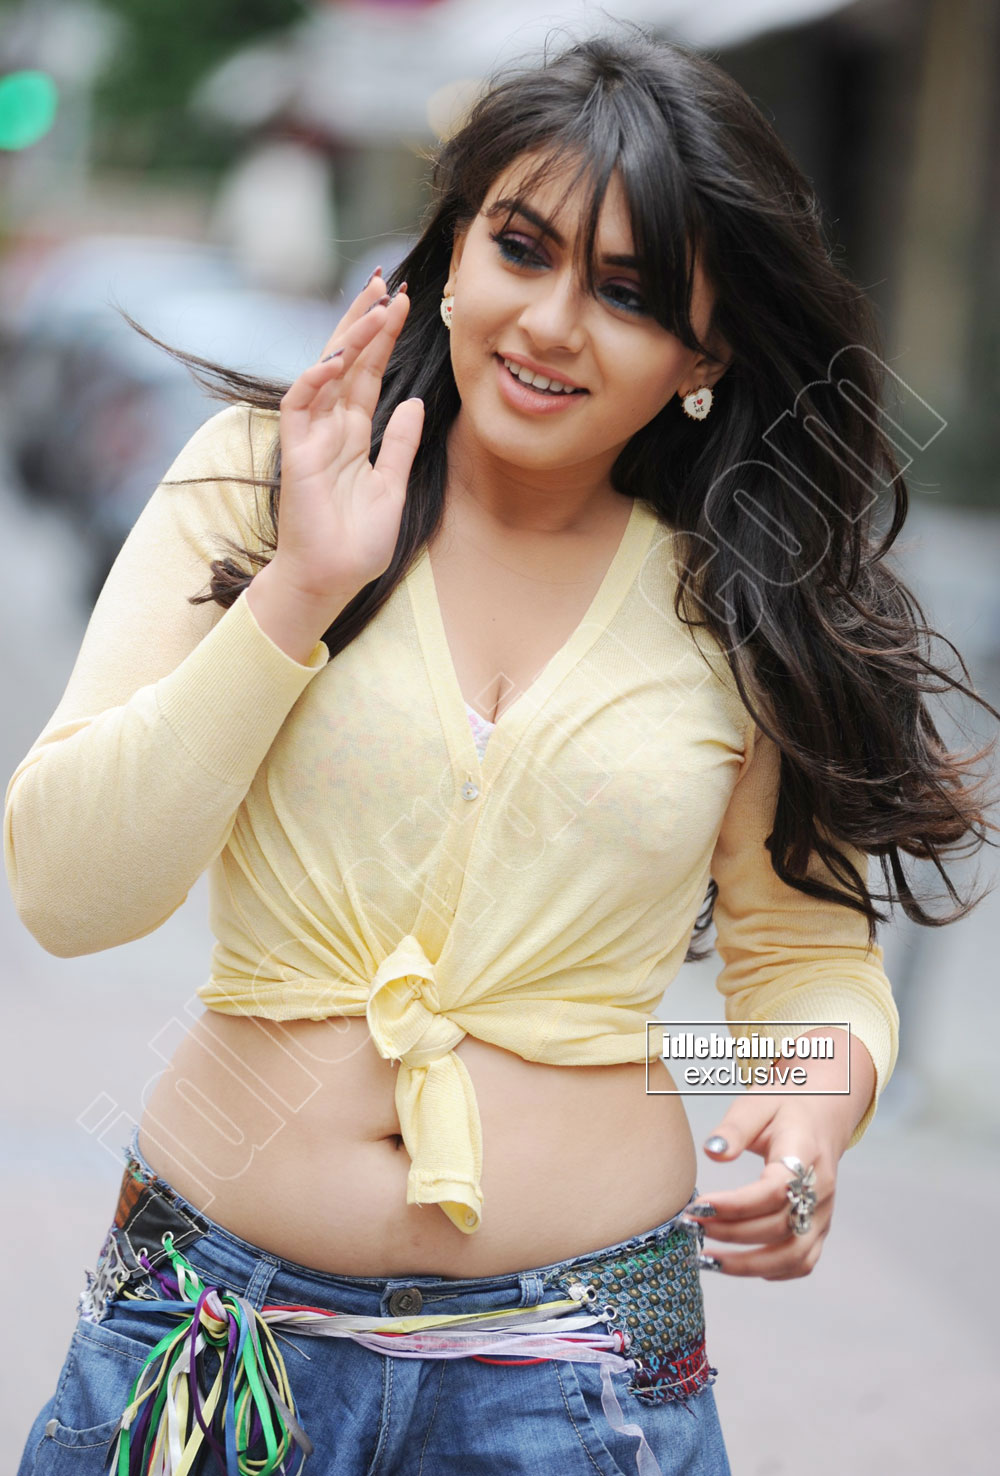 ACTRESS SEXY SPICY HOT PICTURES: Hansika Motwani Cleavage